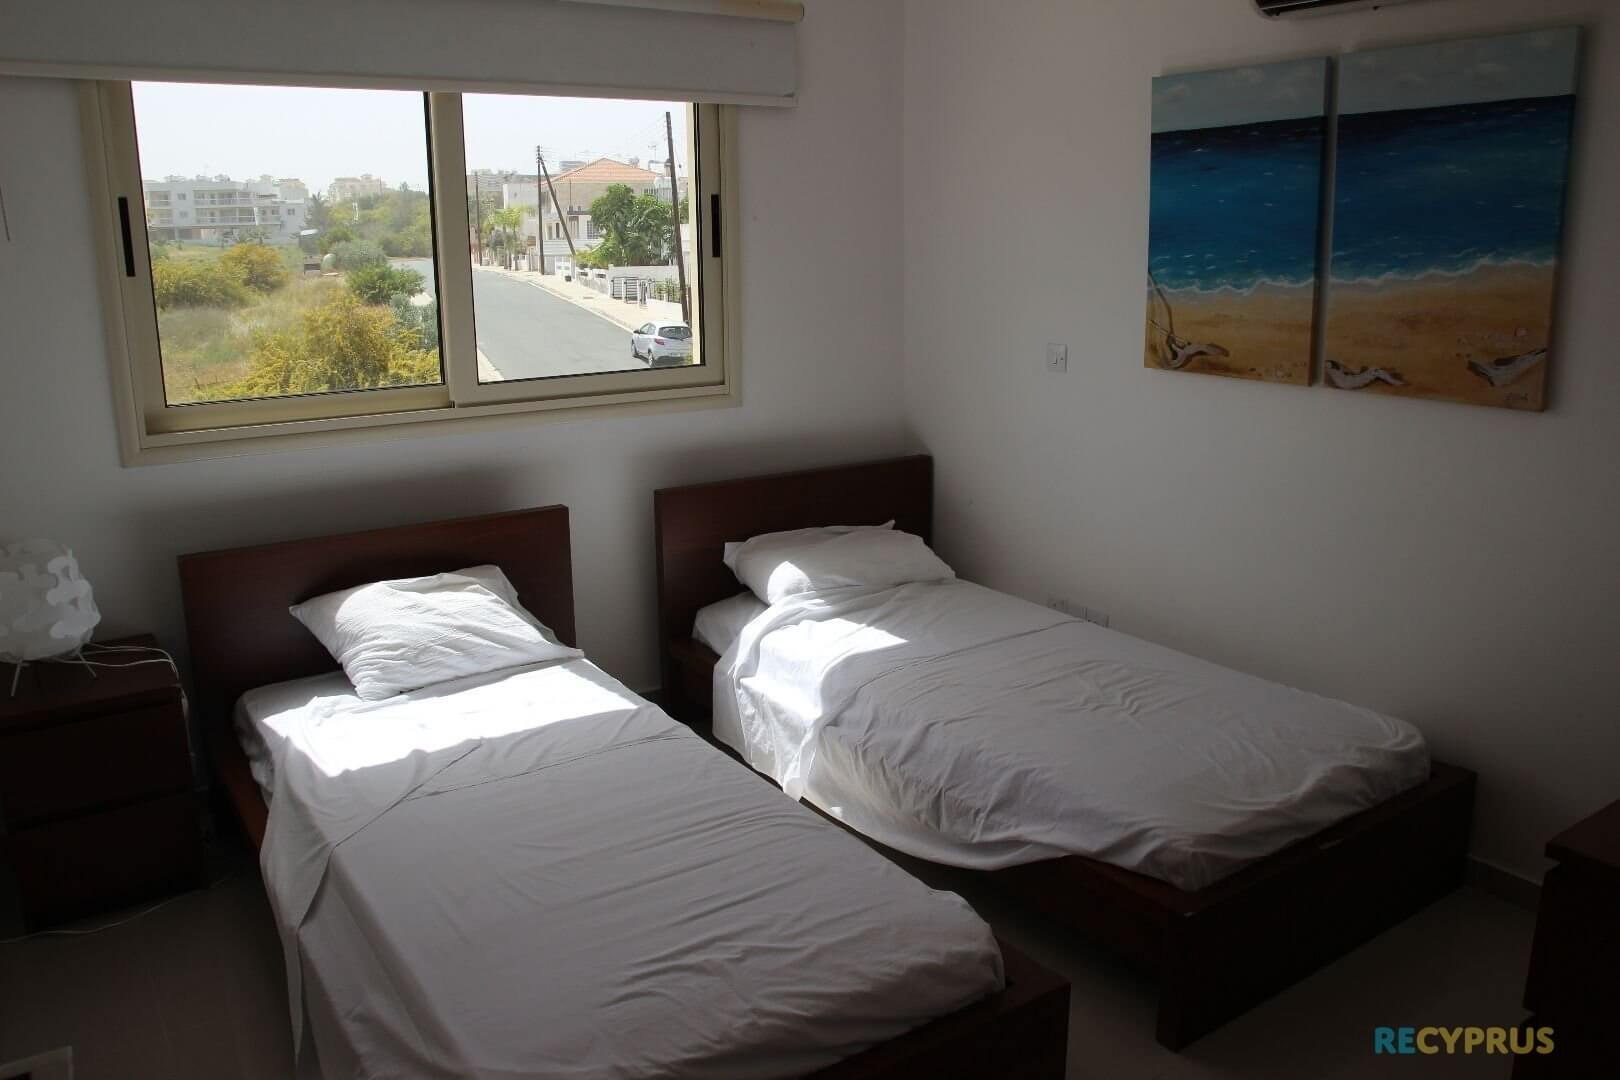 Apartment for sale Kapparis Famagusta Cyprus 6 3560